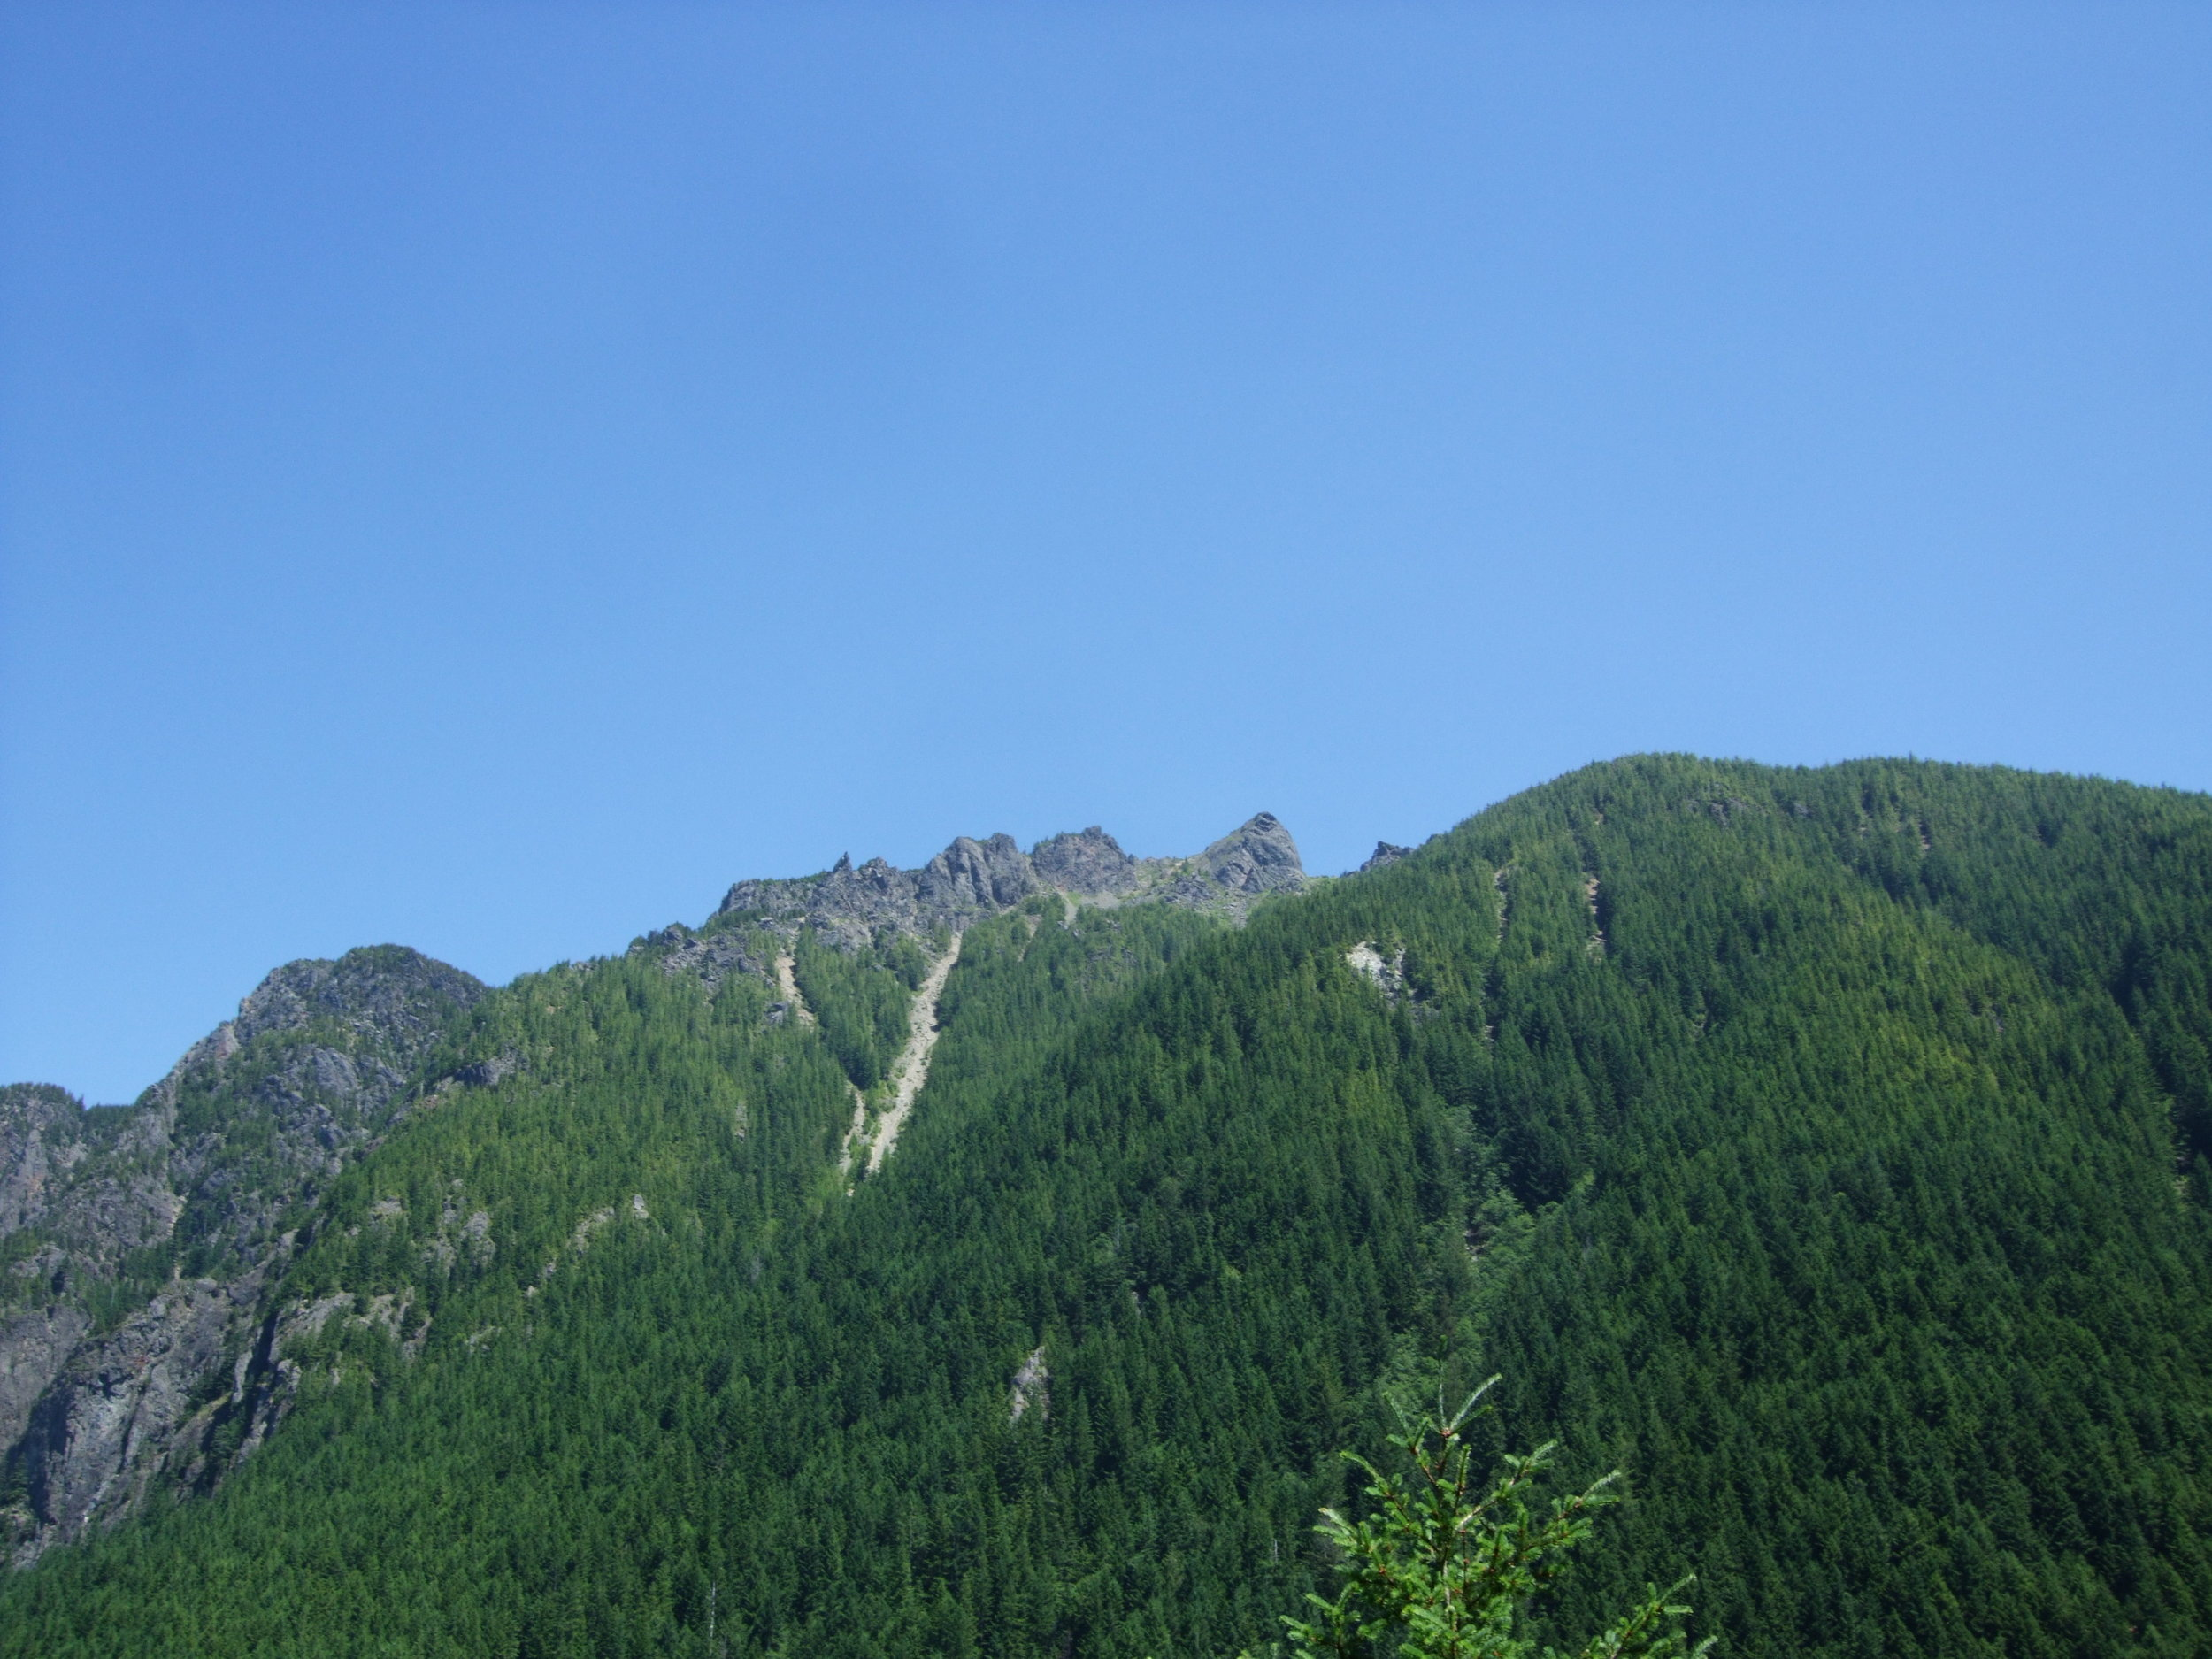 Mt. Si from Little Si, June 2013